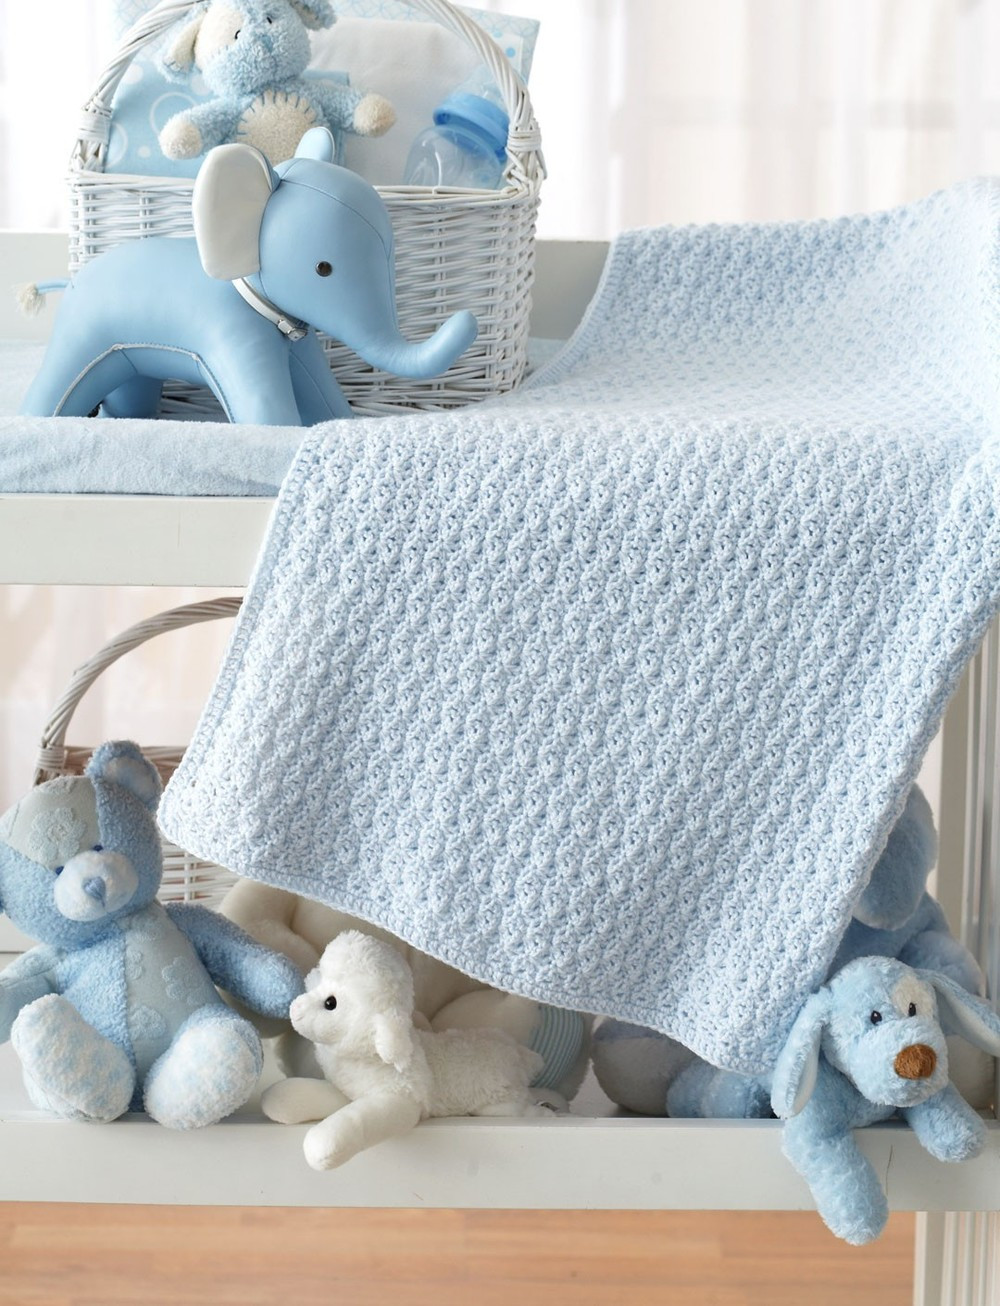 Crochet Patterns for Baby Blankets New Bundle In Blue Crochet Baby Blanket Pattern Of Great 50 Photos Crochet Patterns for Baby Blankets